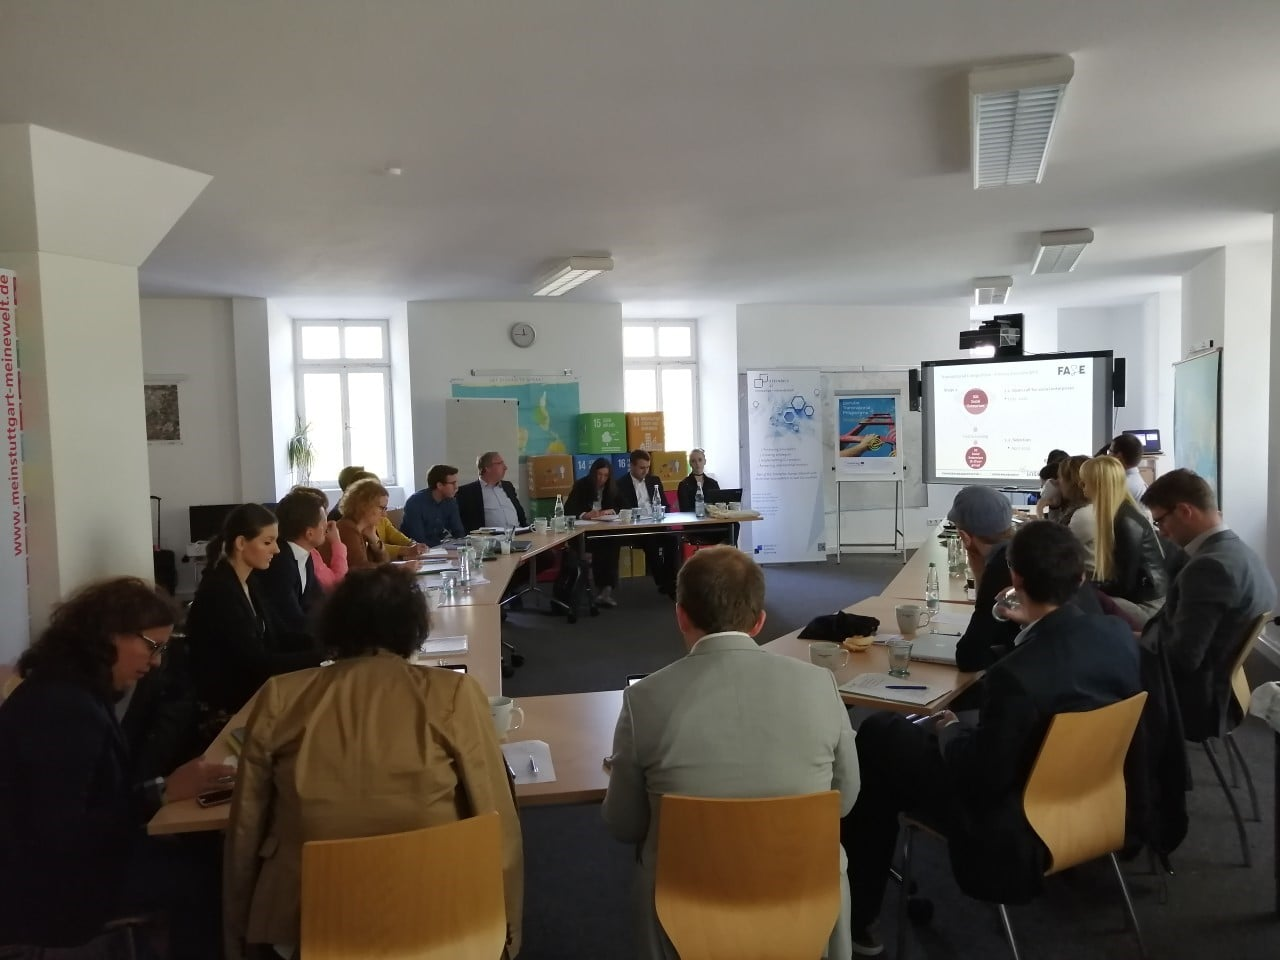 Social Impact Investment Community Council Meeting